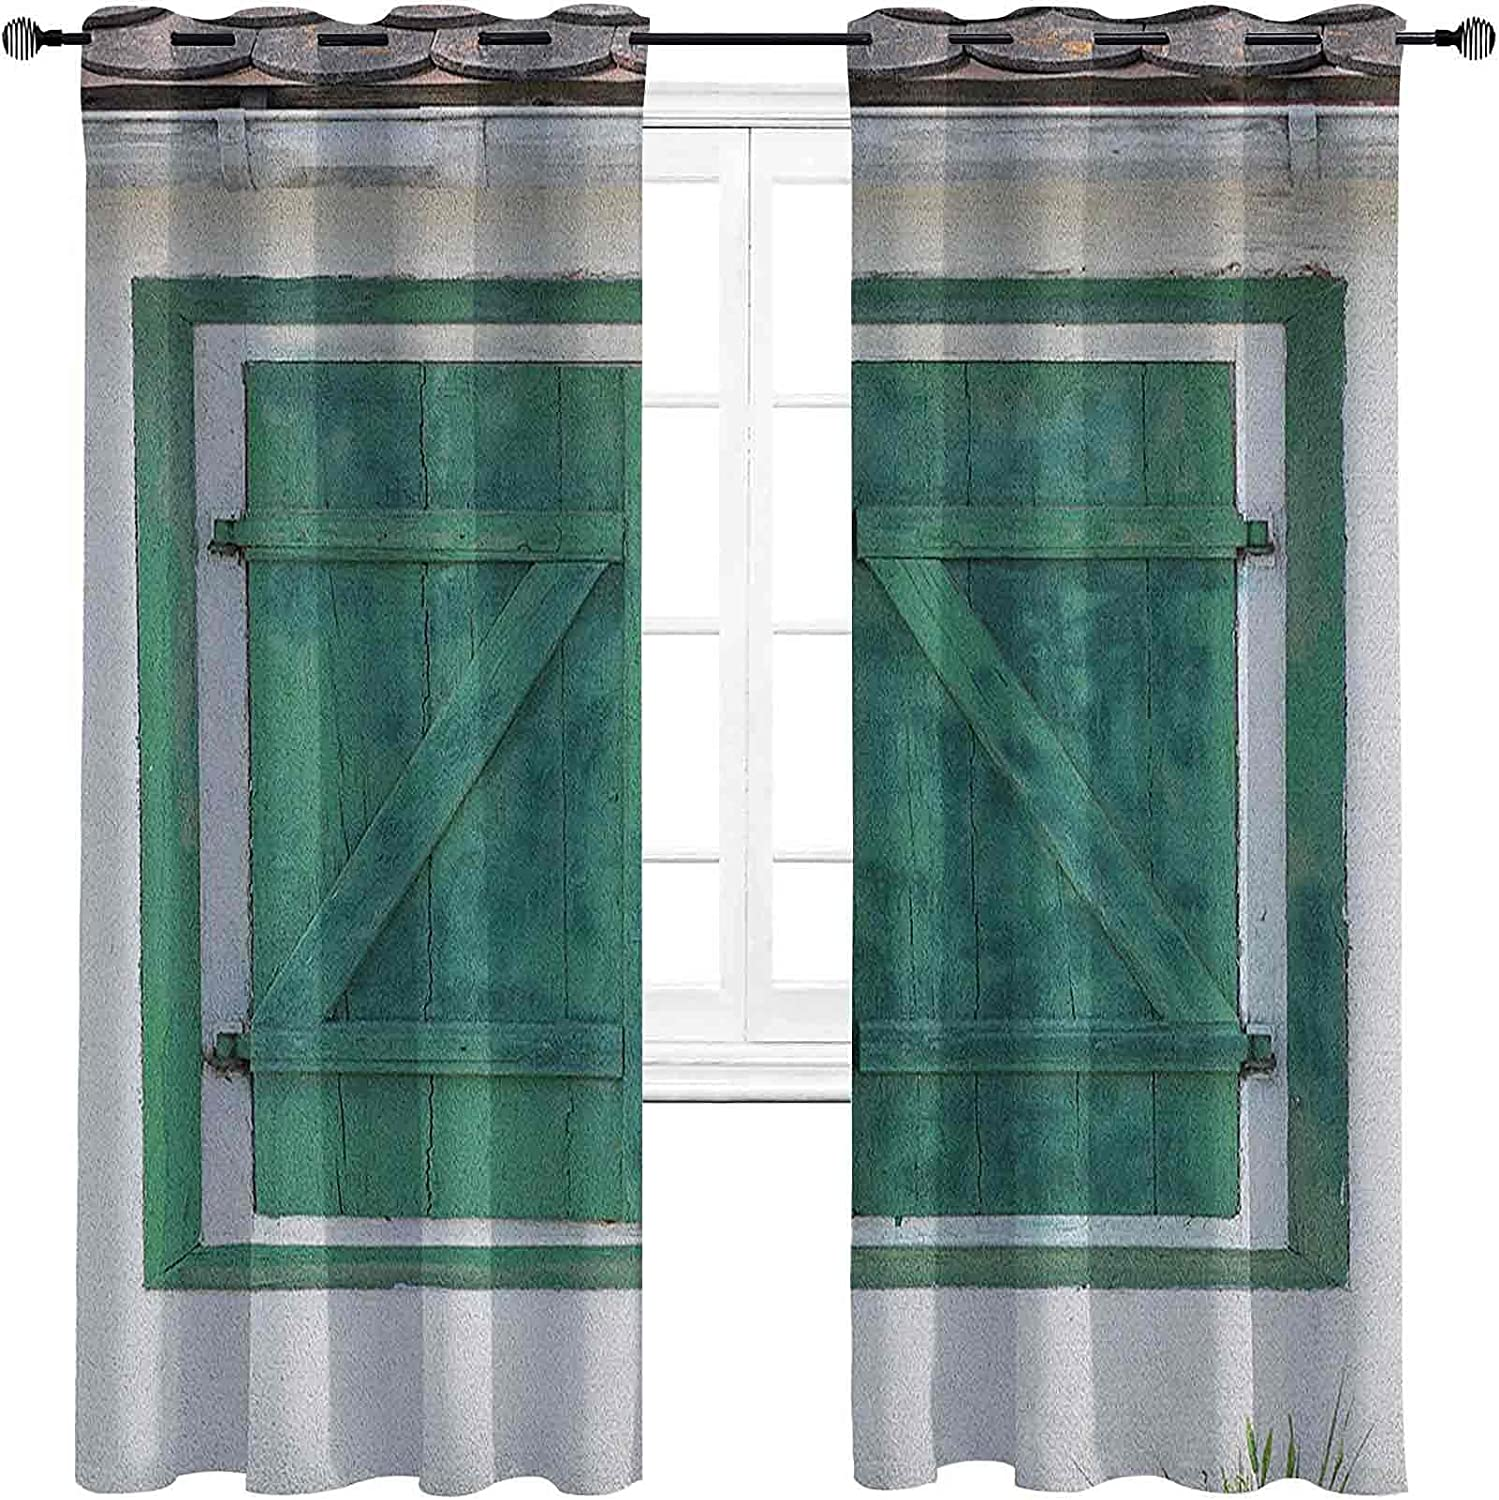 Max 71% OFF Country Sale special price Room Darkened Insulation Grommet Curtain W Retro Wooden